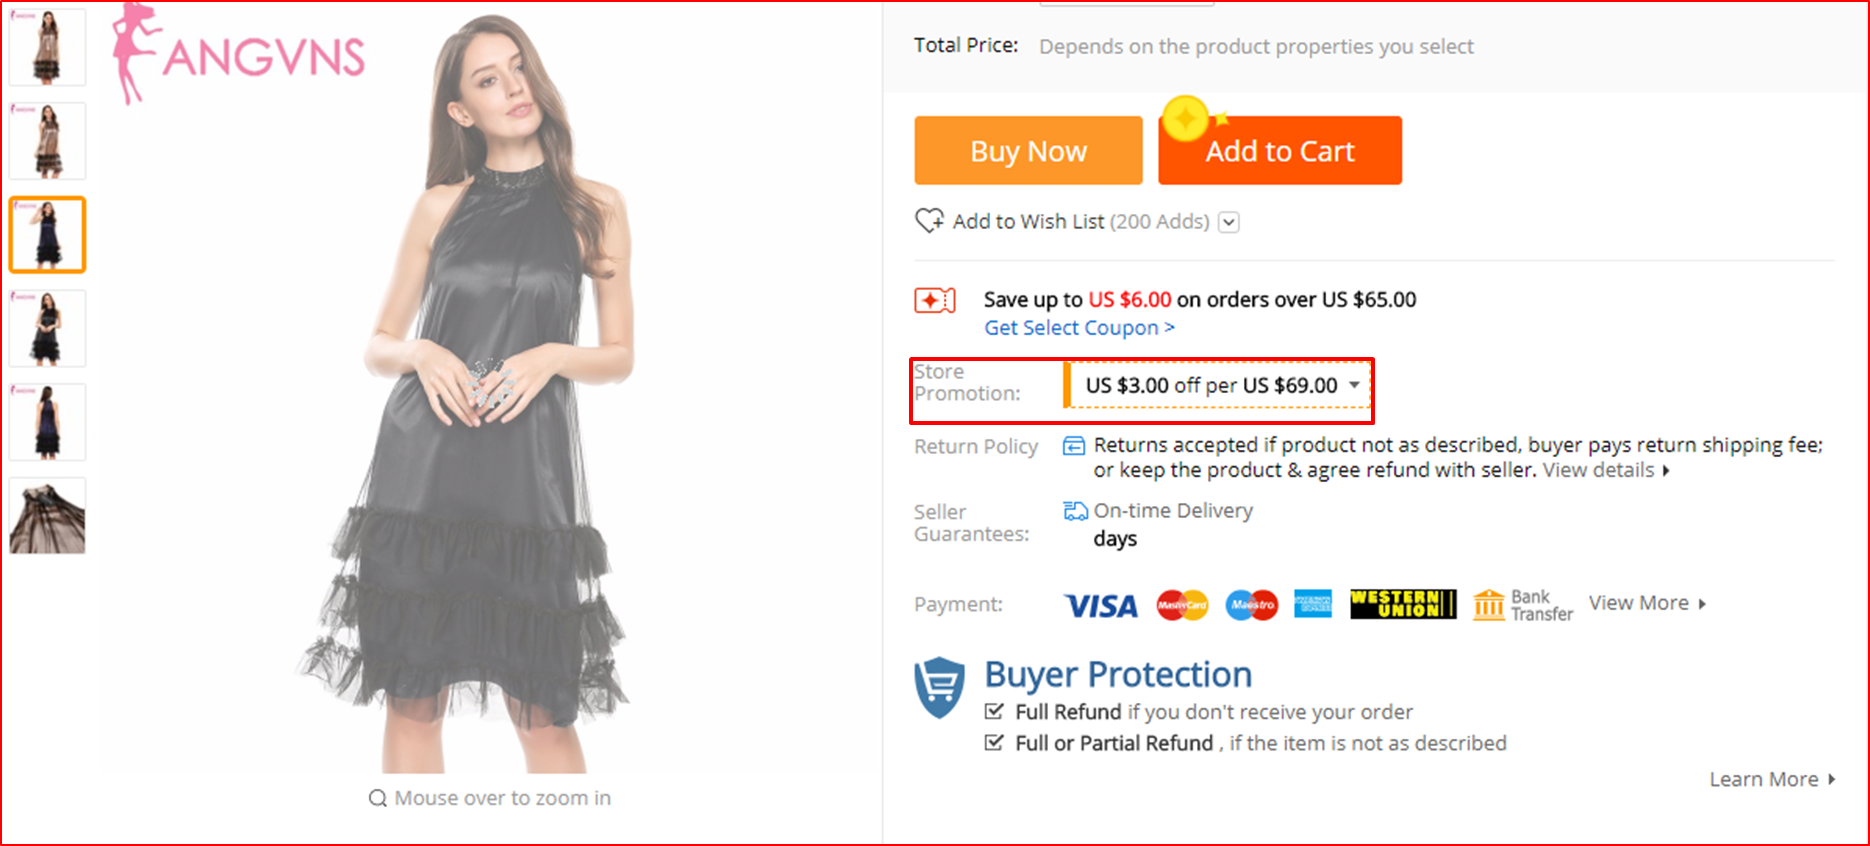 How to use a AliExpress Promo Code